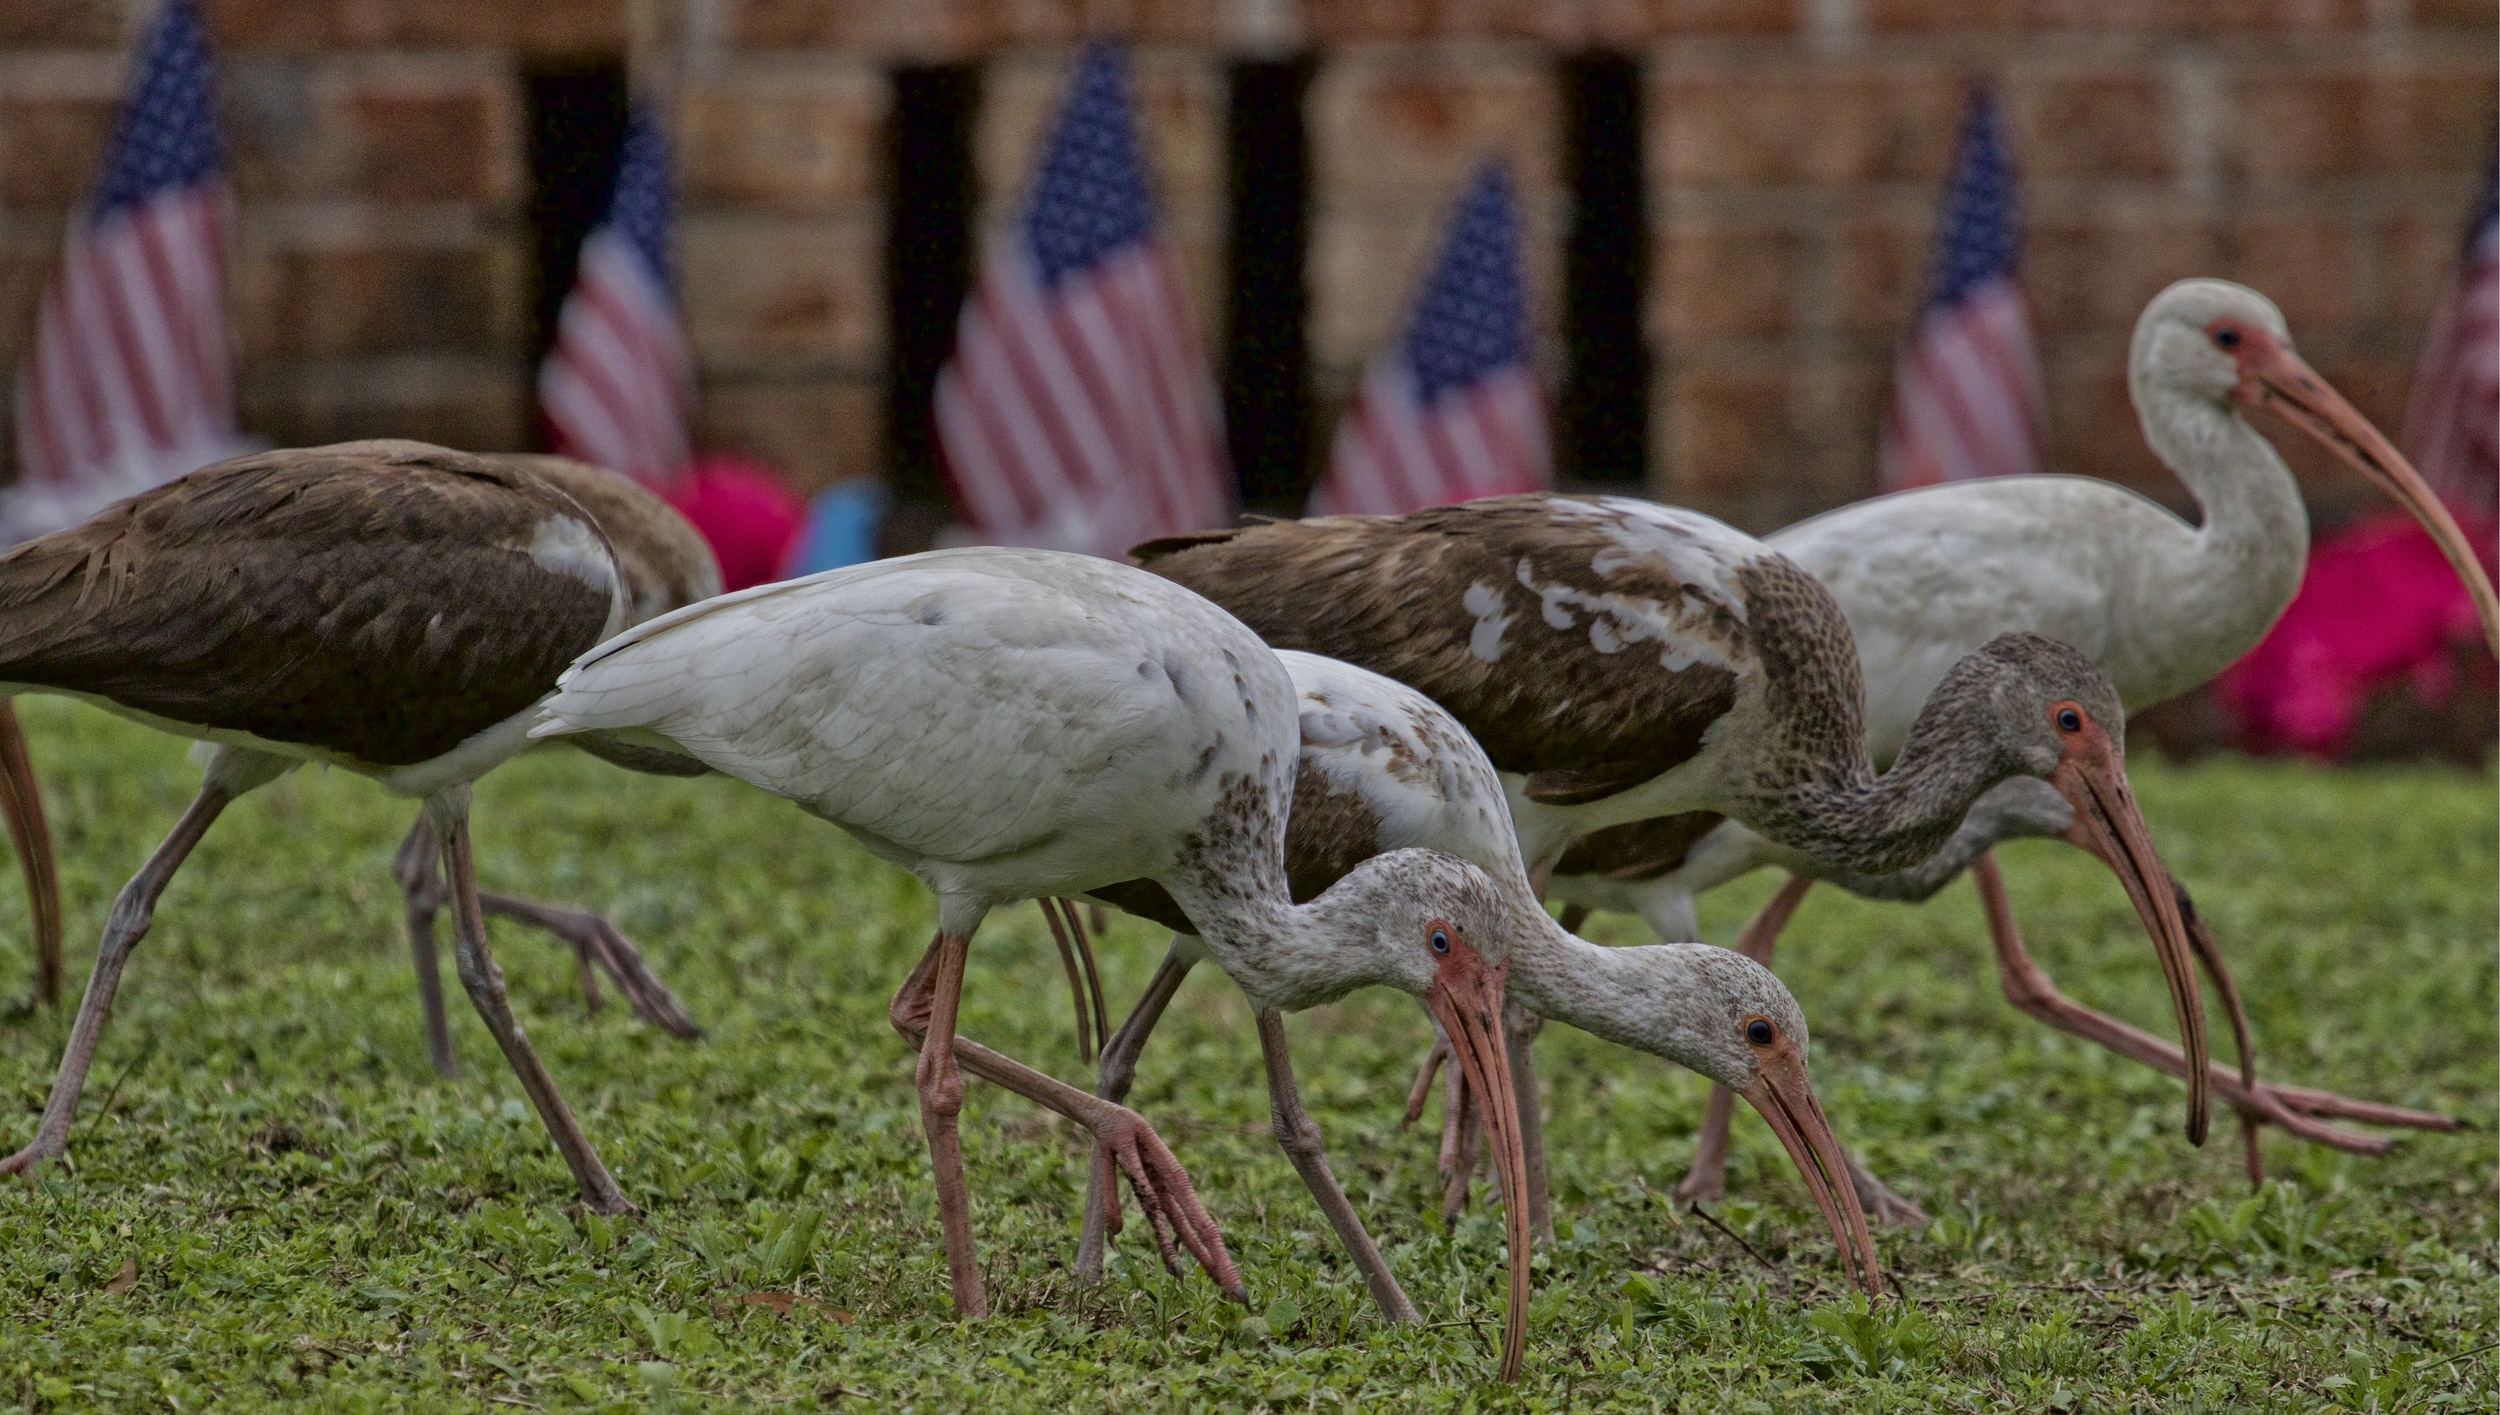 The young White Ibis have been visiting lawns all over the neighborhood feeding in the grass.